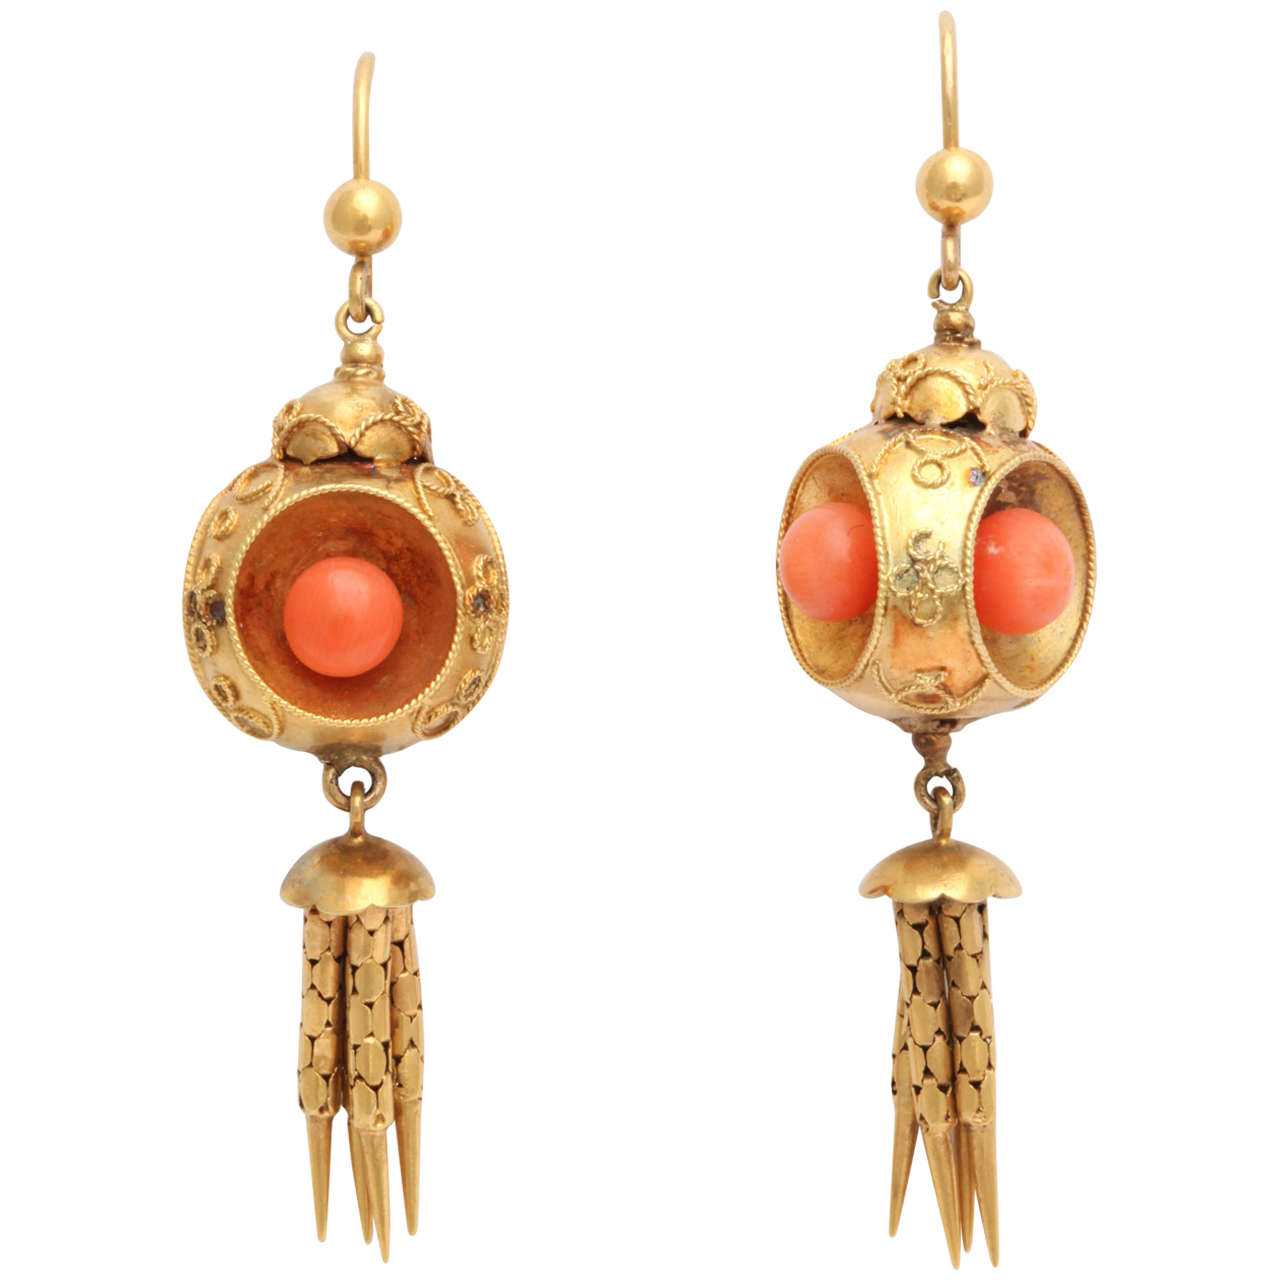 These gorgeous Victorian coral and gold earrings, circa 1870 are designed as 18k gold spheres with granulation suspending hi-karat gold tassels.  Victorian, circa 1870.  2 1/4 in. (5.7 cm) long.